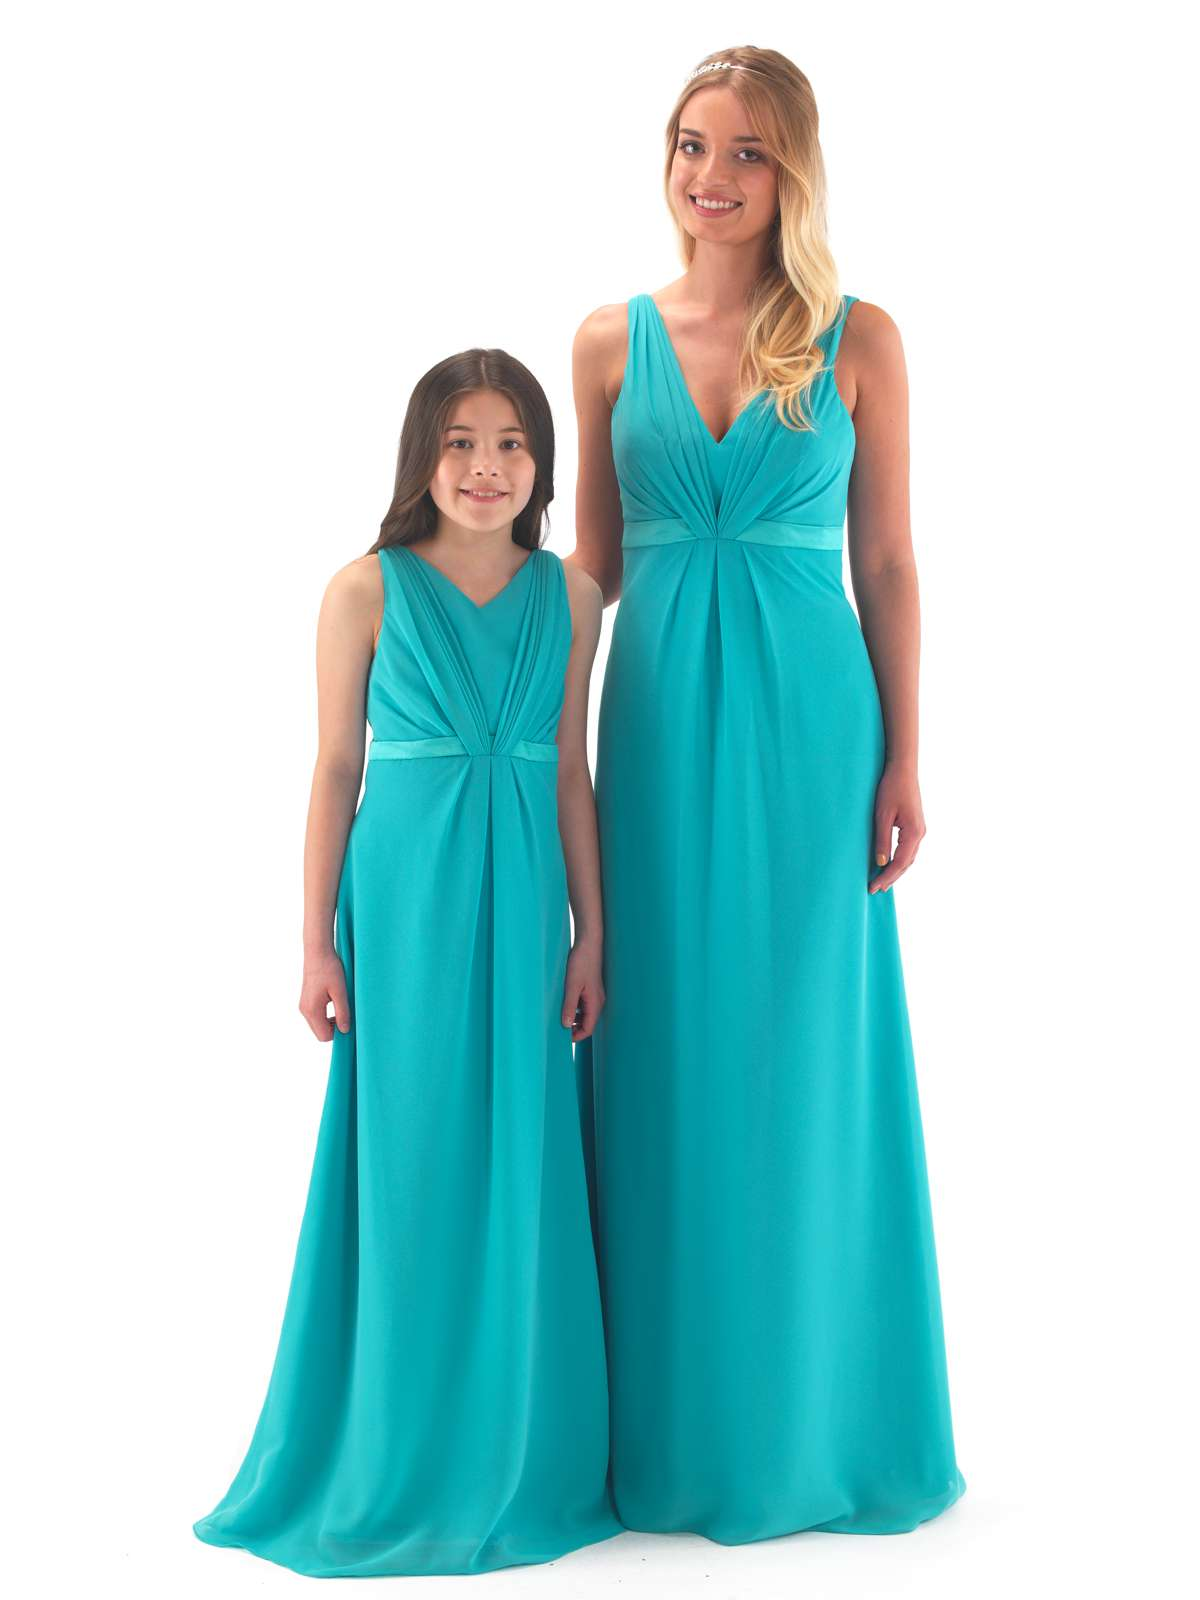 Gorgeous summer bridesmaid dresses love our wedding en339ek339 bridesmaid dresses ombrellifo Image collections